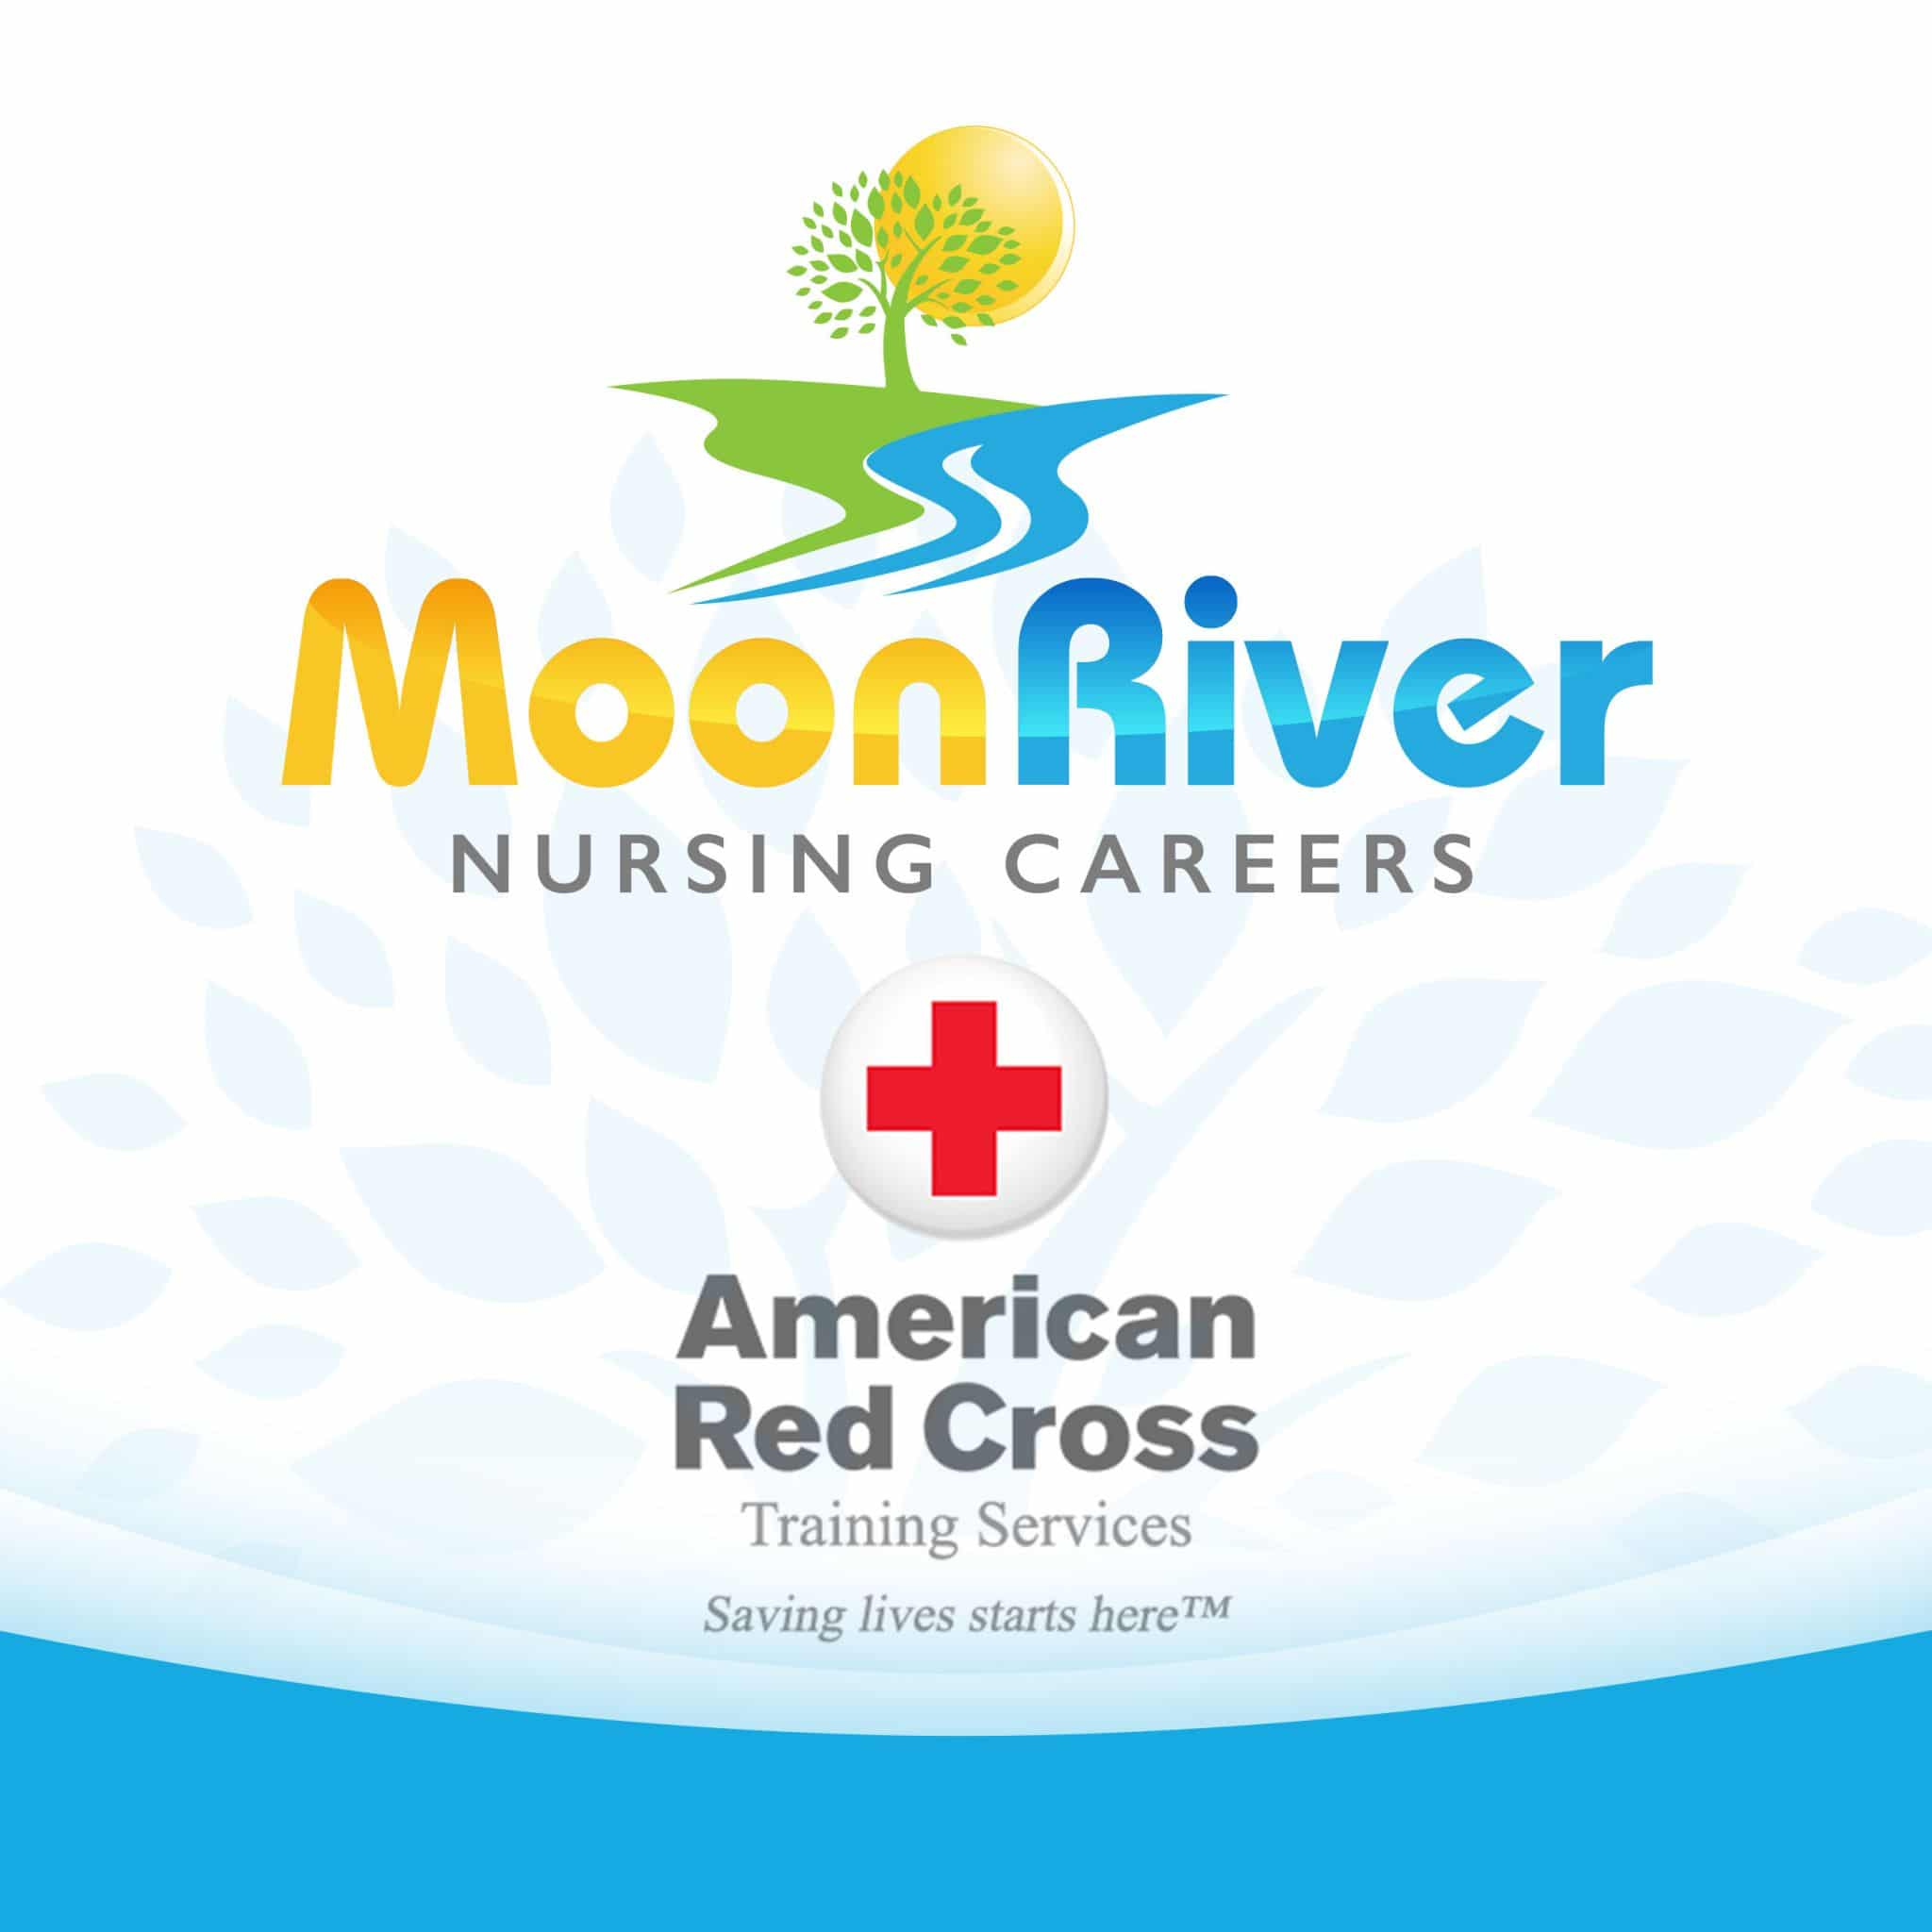 Moon River Nursing Careers is a proud provider of the American Red Cross Nurse Assistant training program.